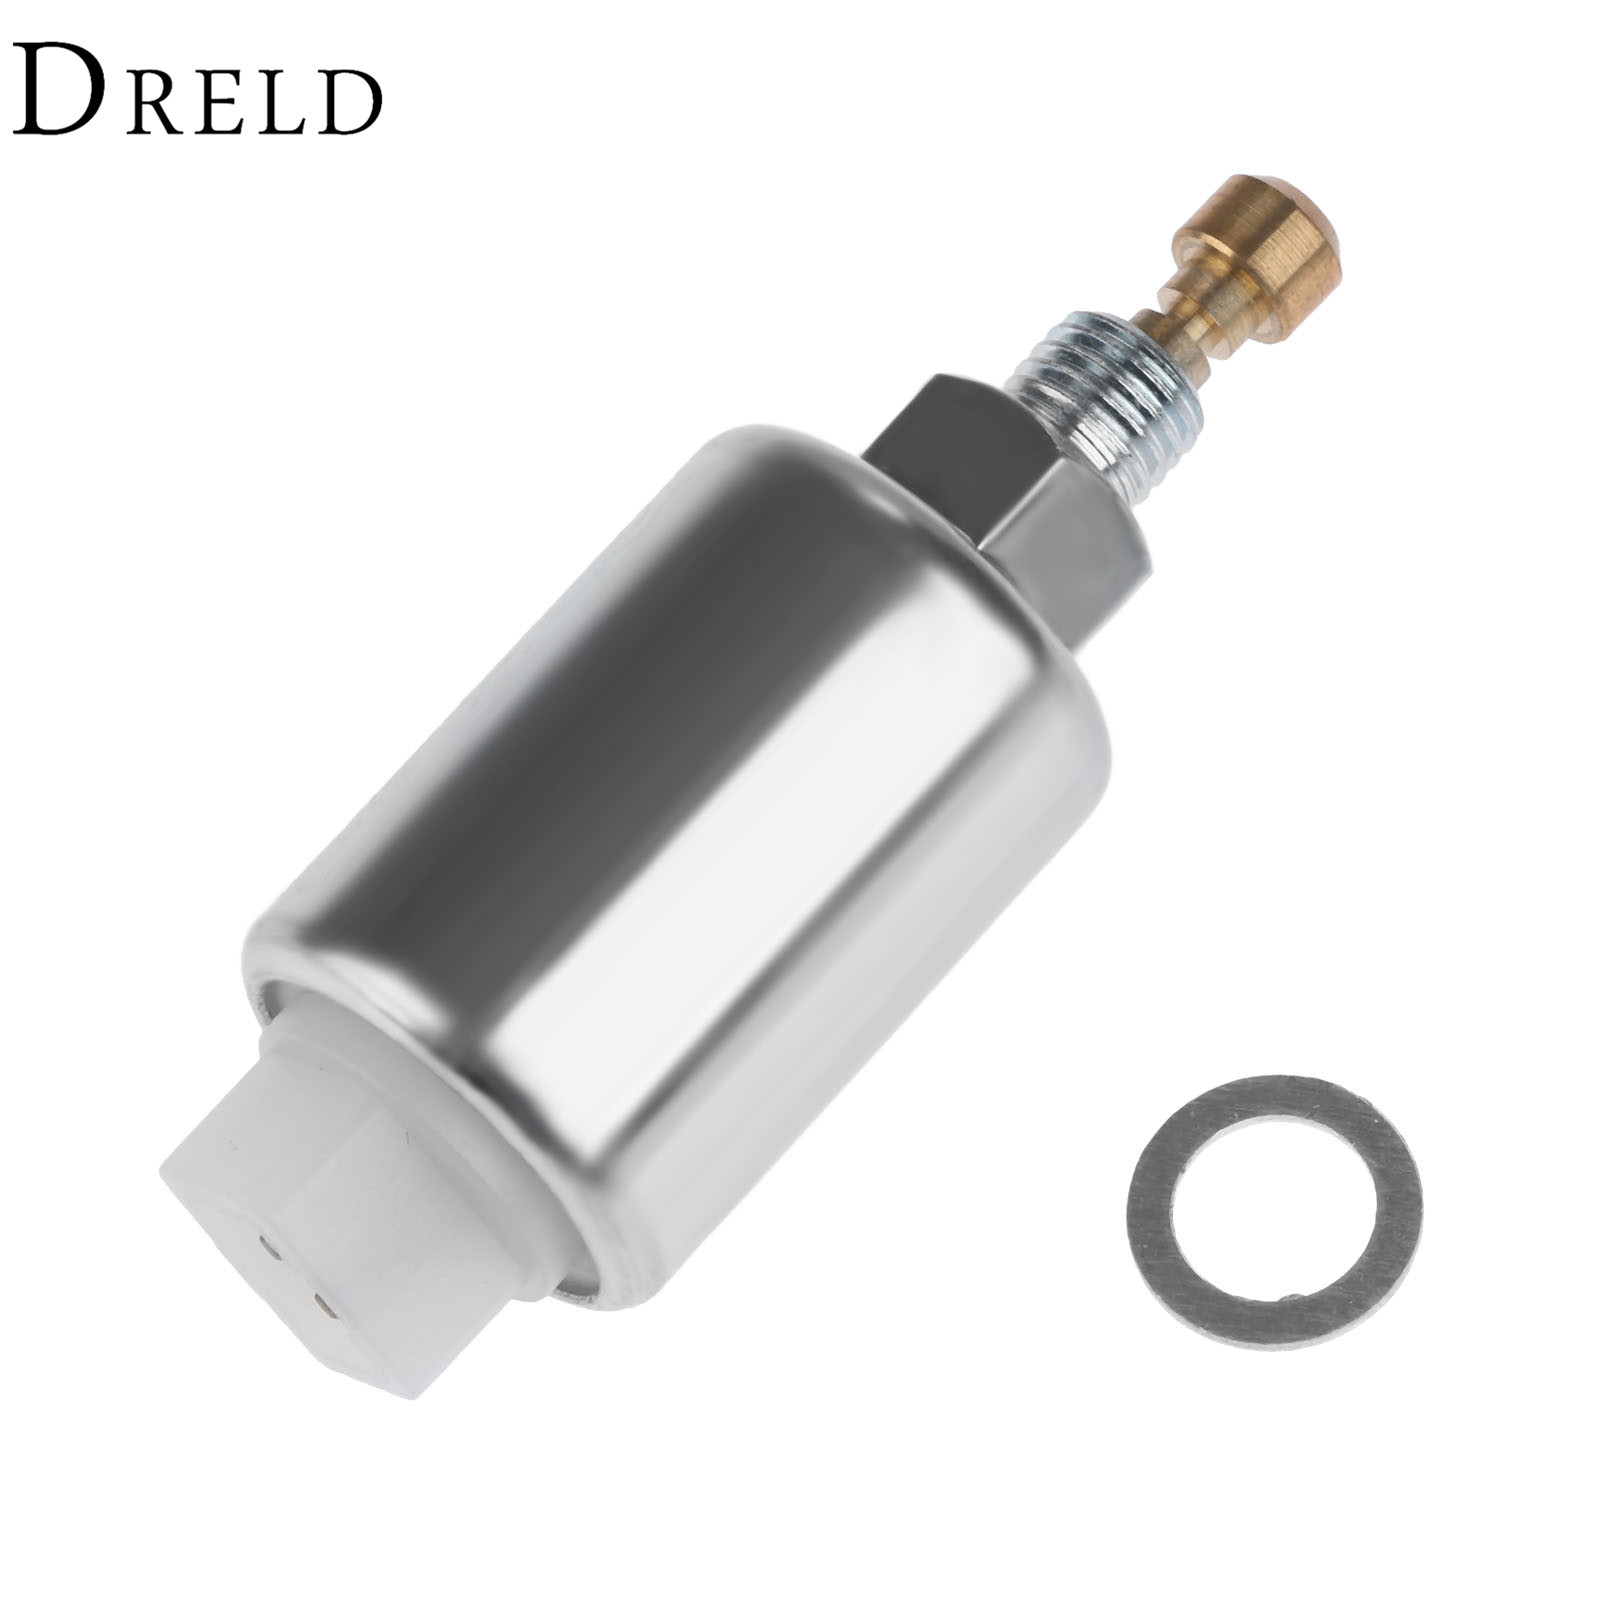 Dreld Carburetor Fuel Solenoid For Briggs Stratton 699915 794572 Engine Diagram Chainsaw 796109 799728 Lawn Mower Parts Garden Power Tools In From On